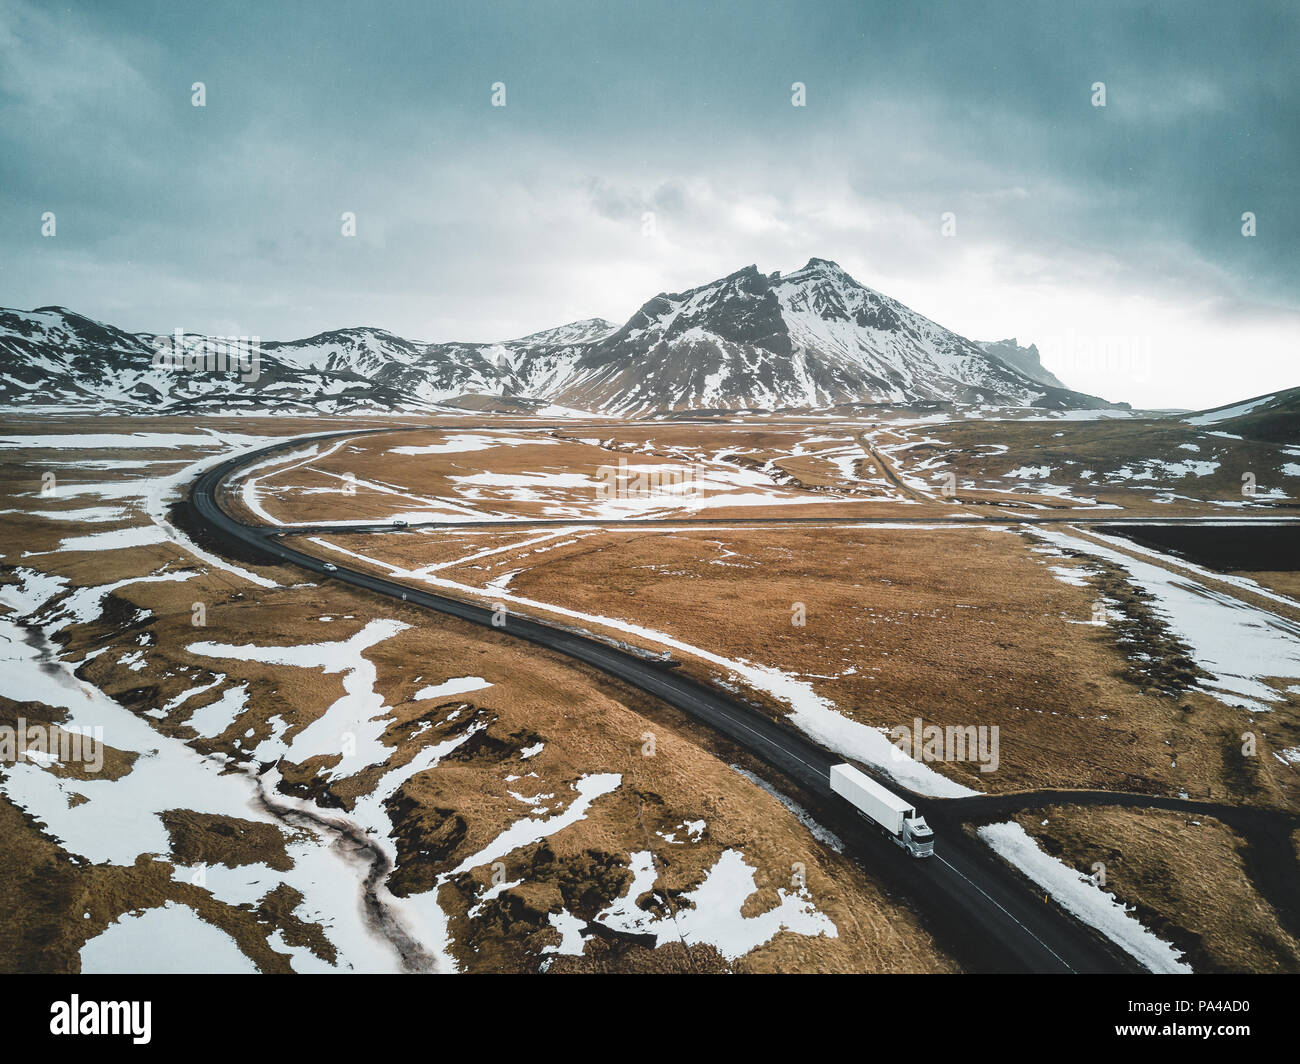 Iceland , February 2018: A truck is passing along a street with aerial view of Landscape with snow and clouds street and yellow and green grass. - Stock Image